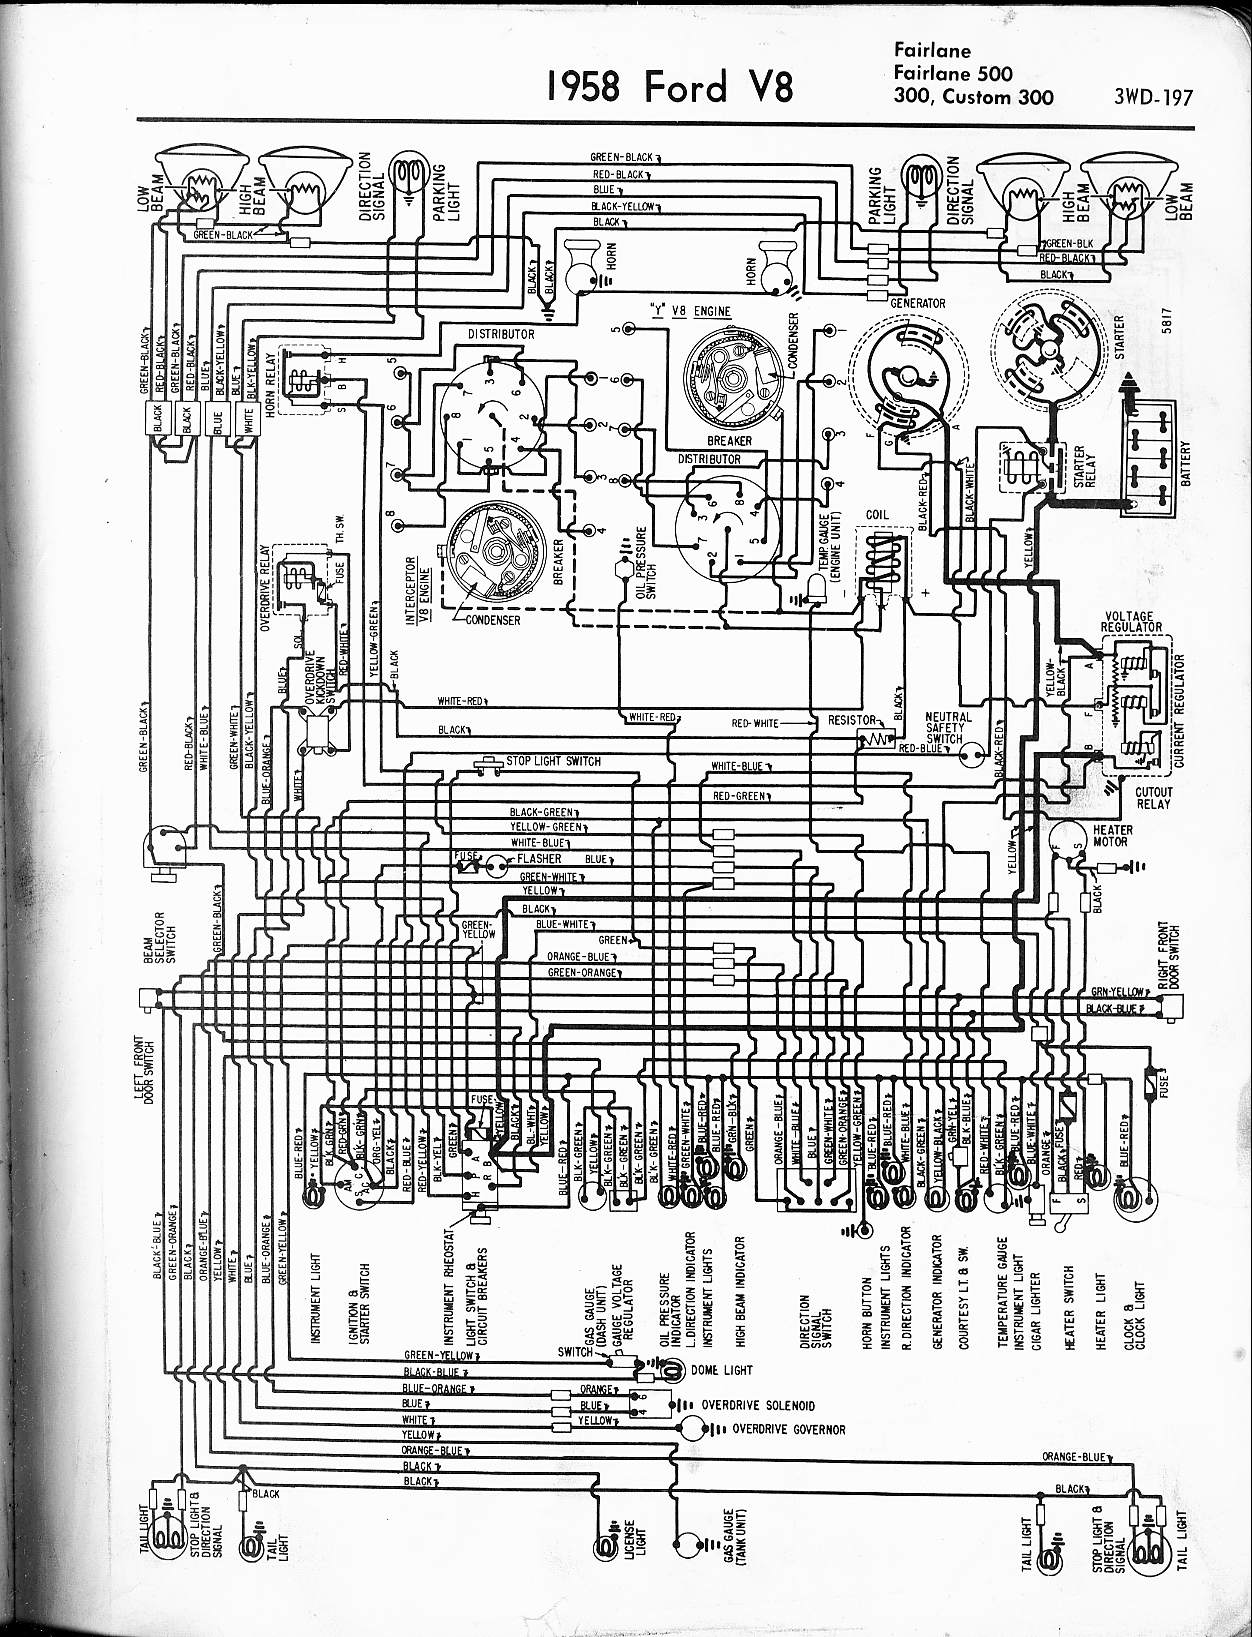 1958 Ford Headlight Wiring Diagram 1969 F100 57 65 Diagrams Rh Oldcarmanualproject Com 56 Switch